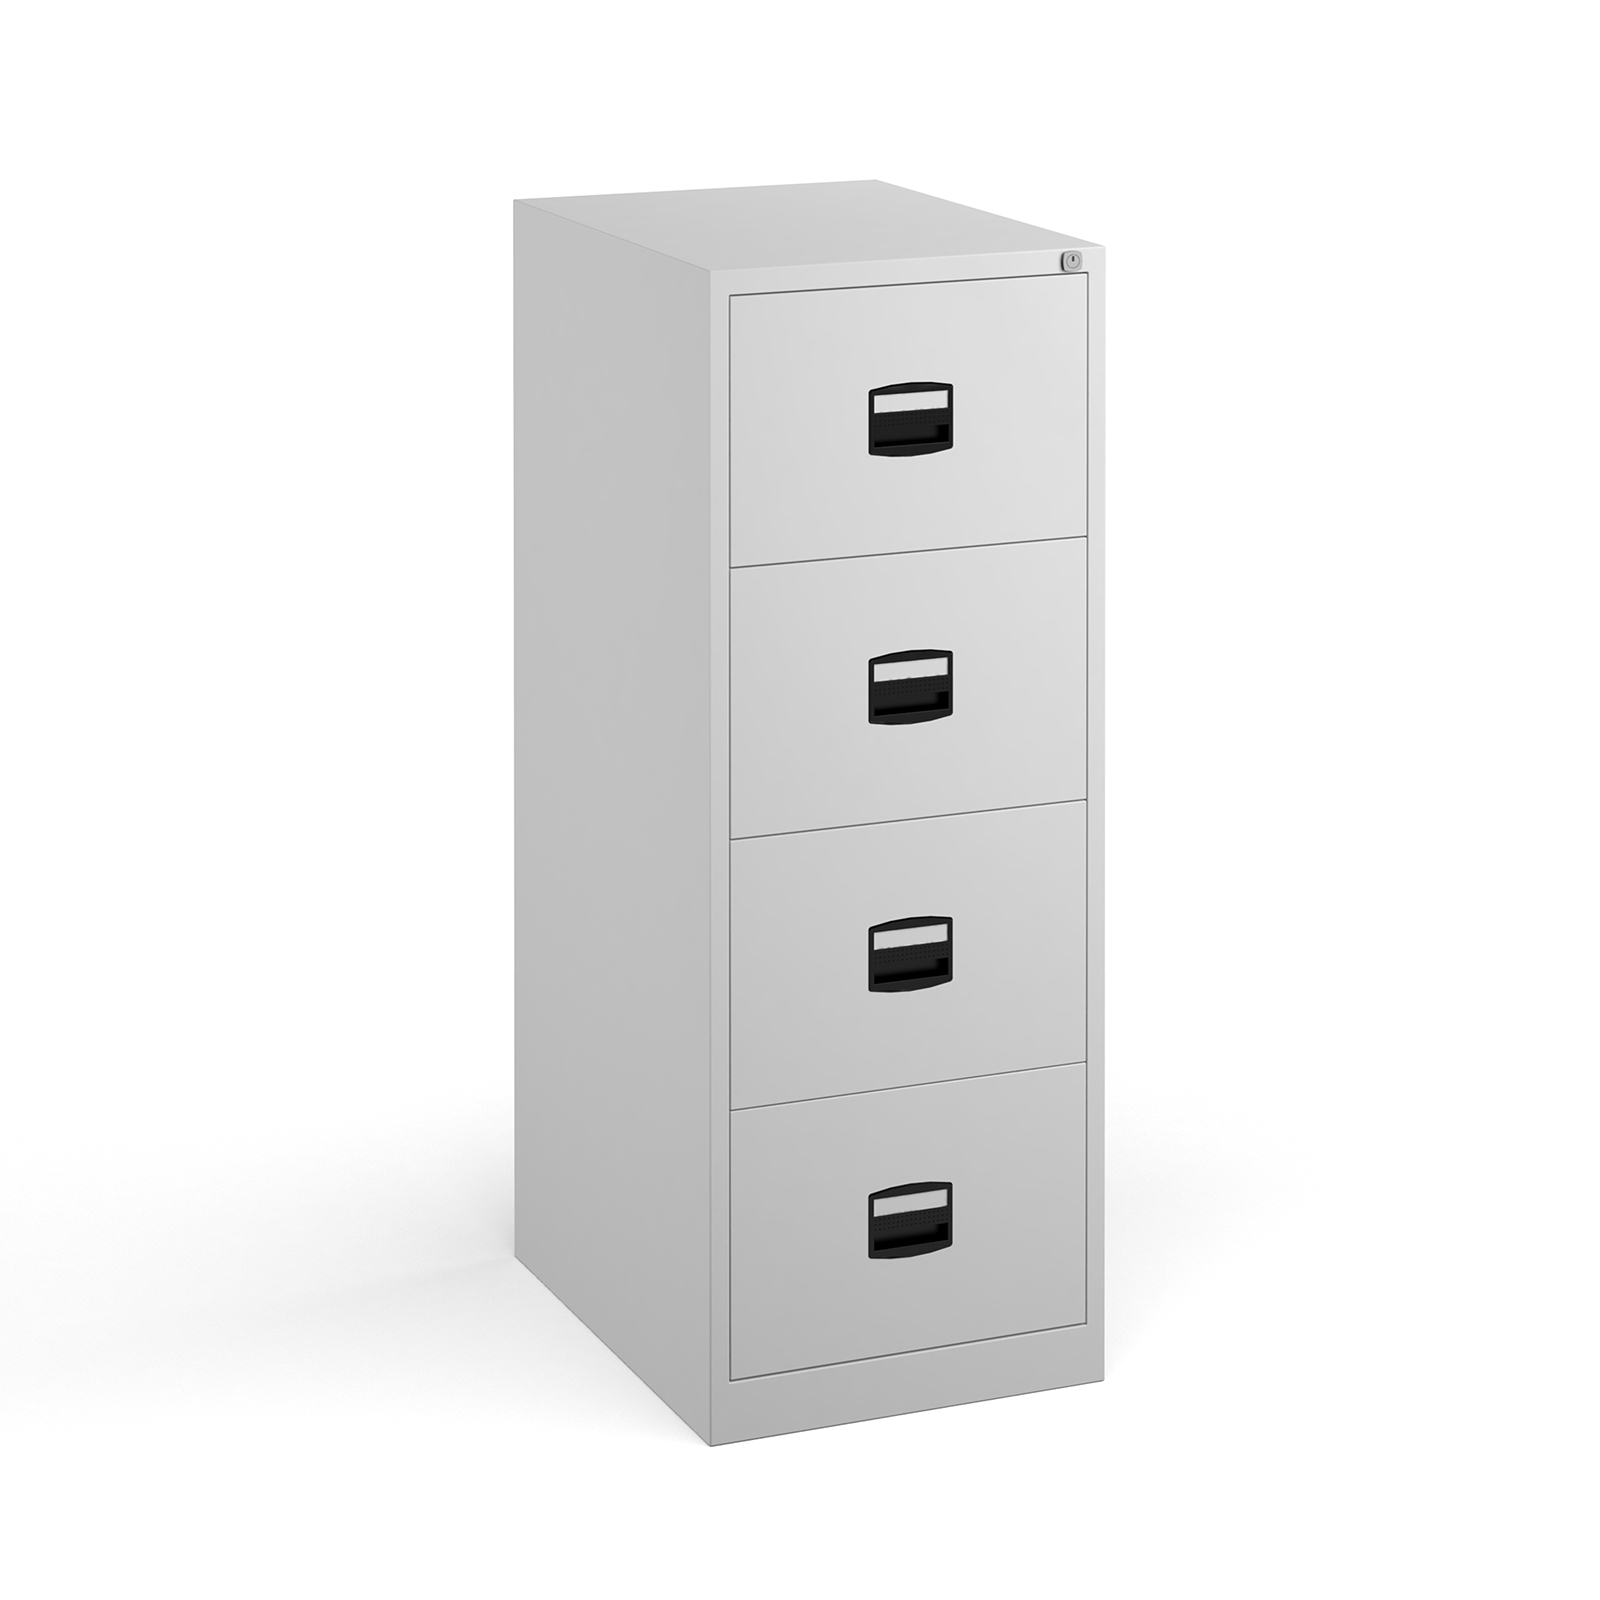 Steel Steel 4 drawer contract filing cabinet 1321mm high - white